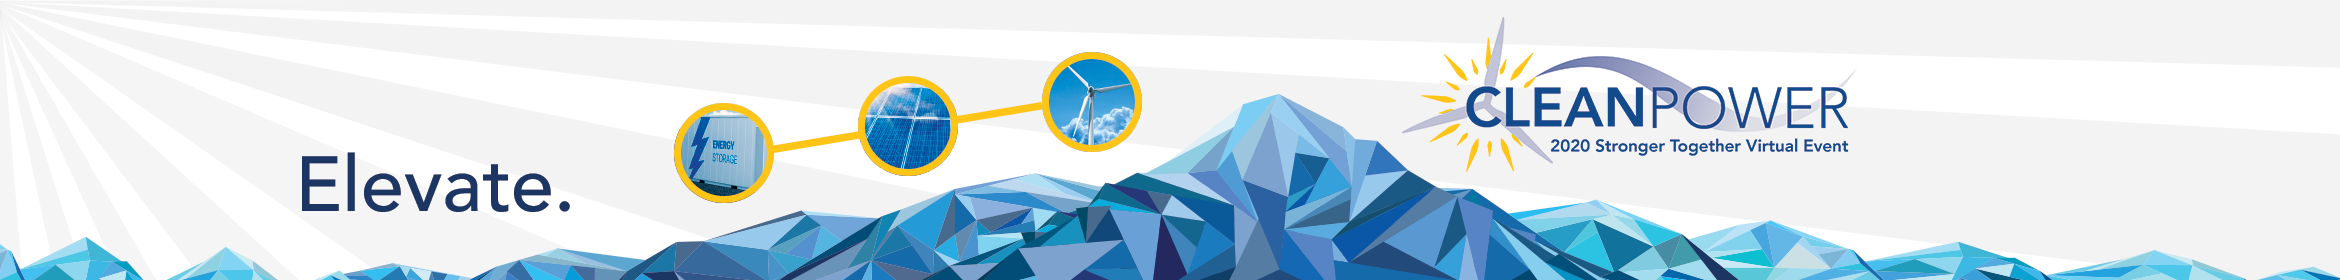 STRONGER TOGETHER VIRTUAL EVENT: CLEANPOWER Live 2020 Main banner